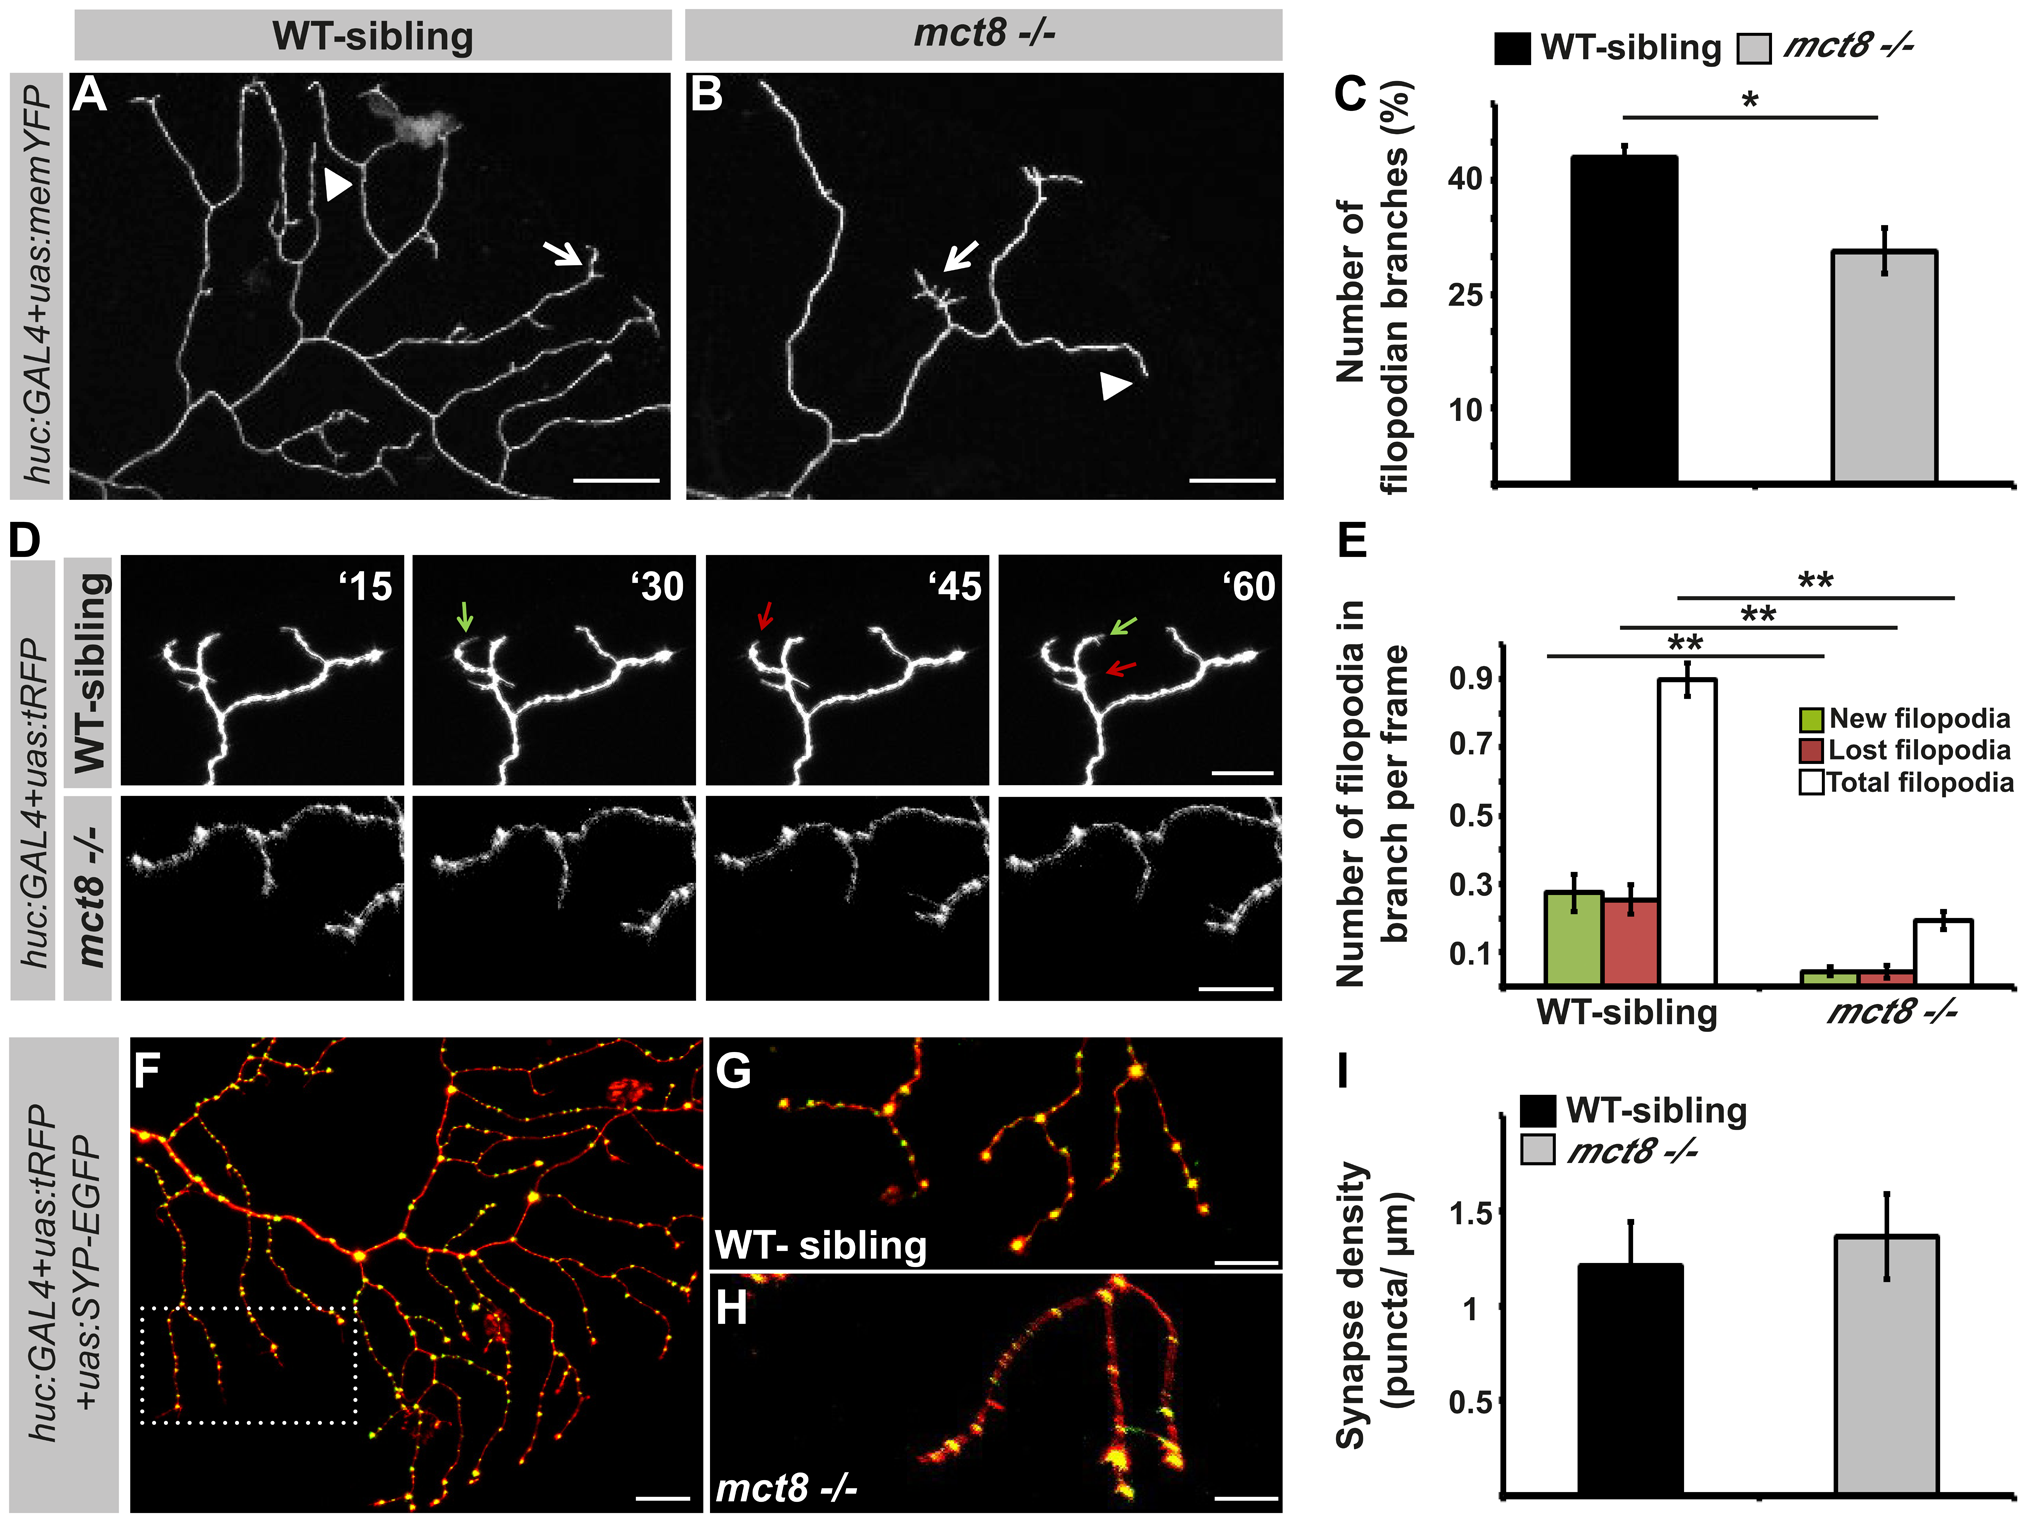 MCT8 reduces filopodia dynamics in the axons of RB neurons.